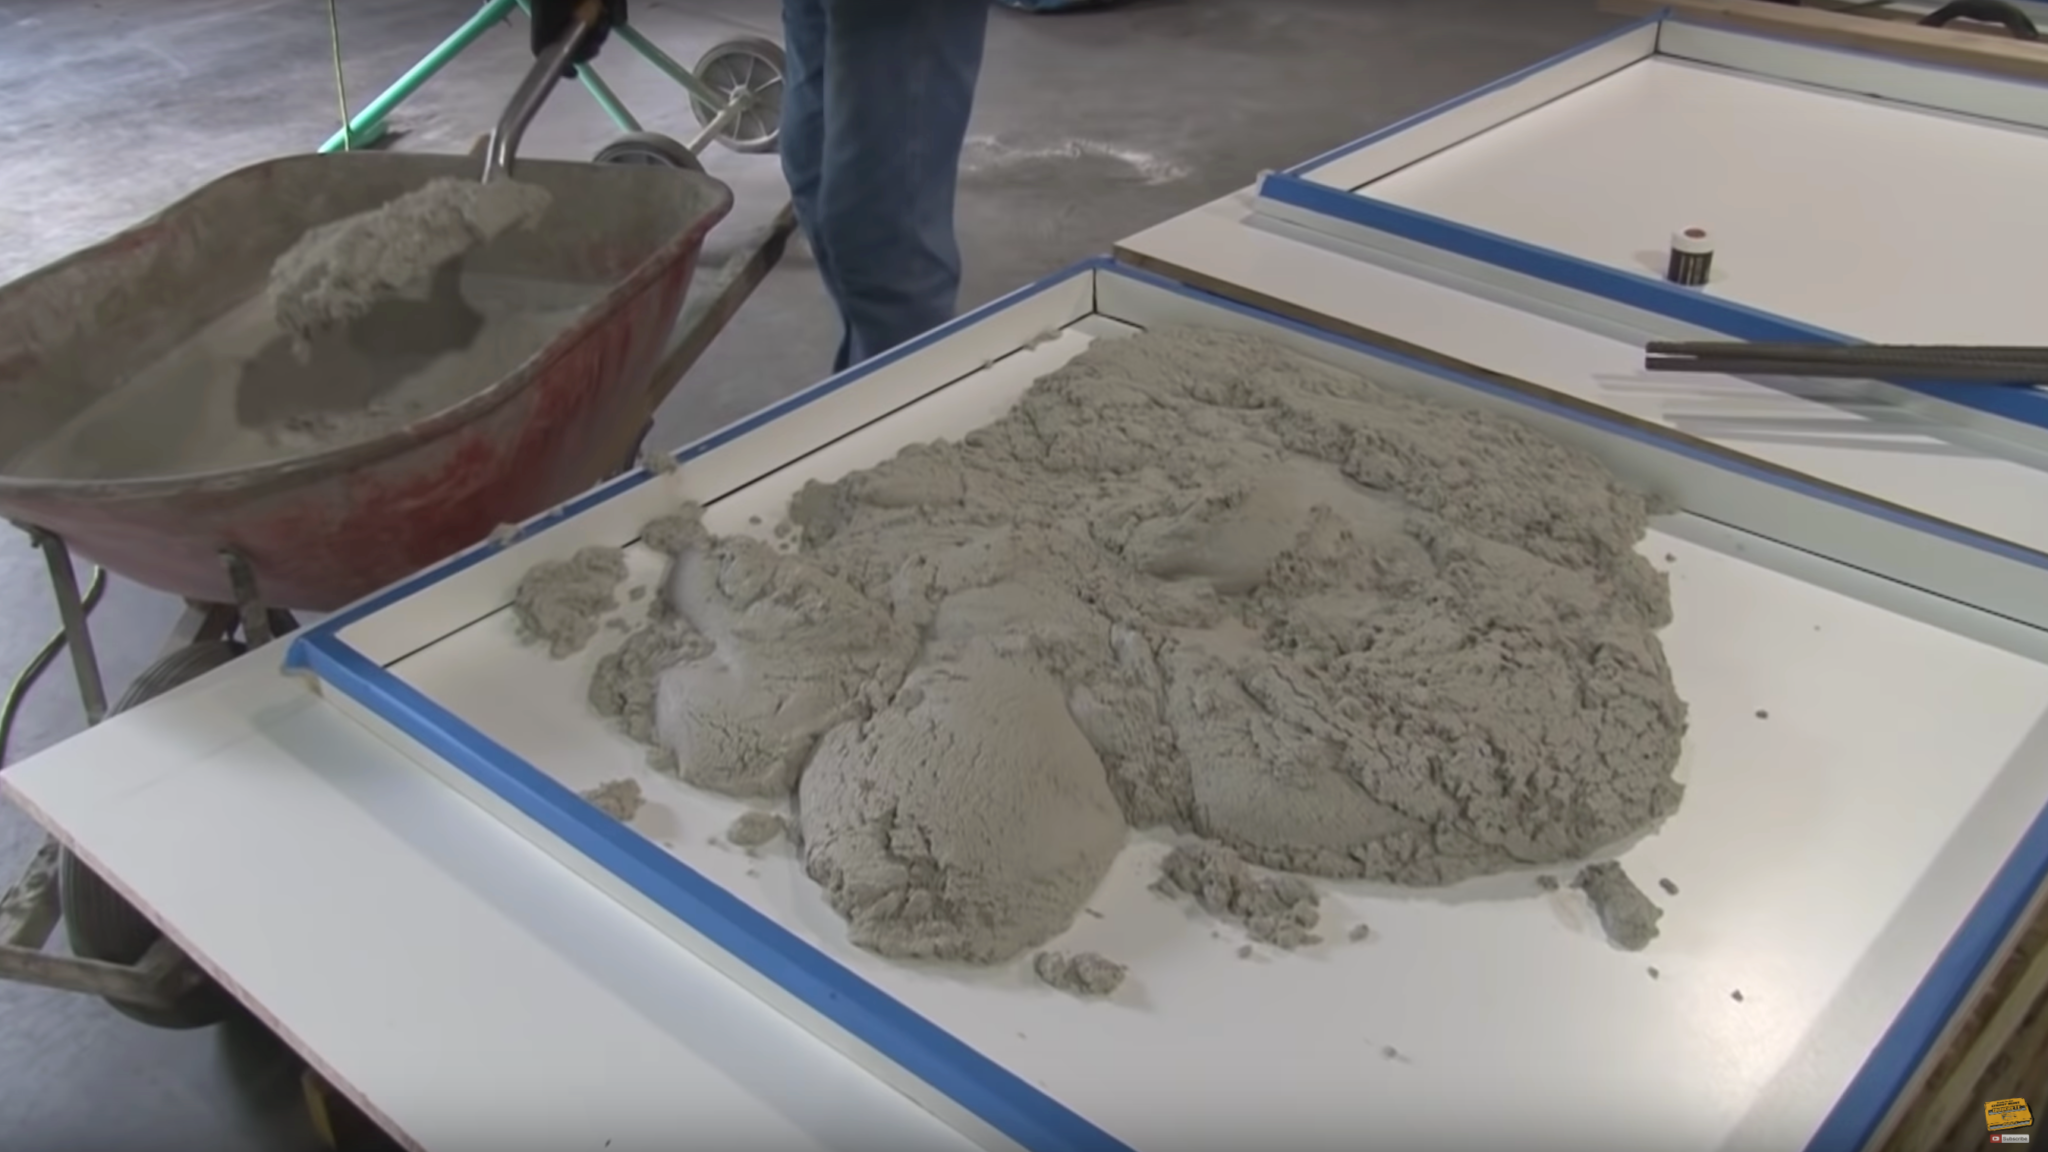 Filling a concrete countertop form